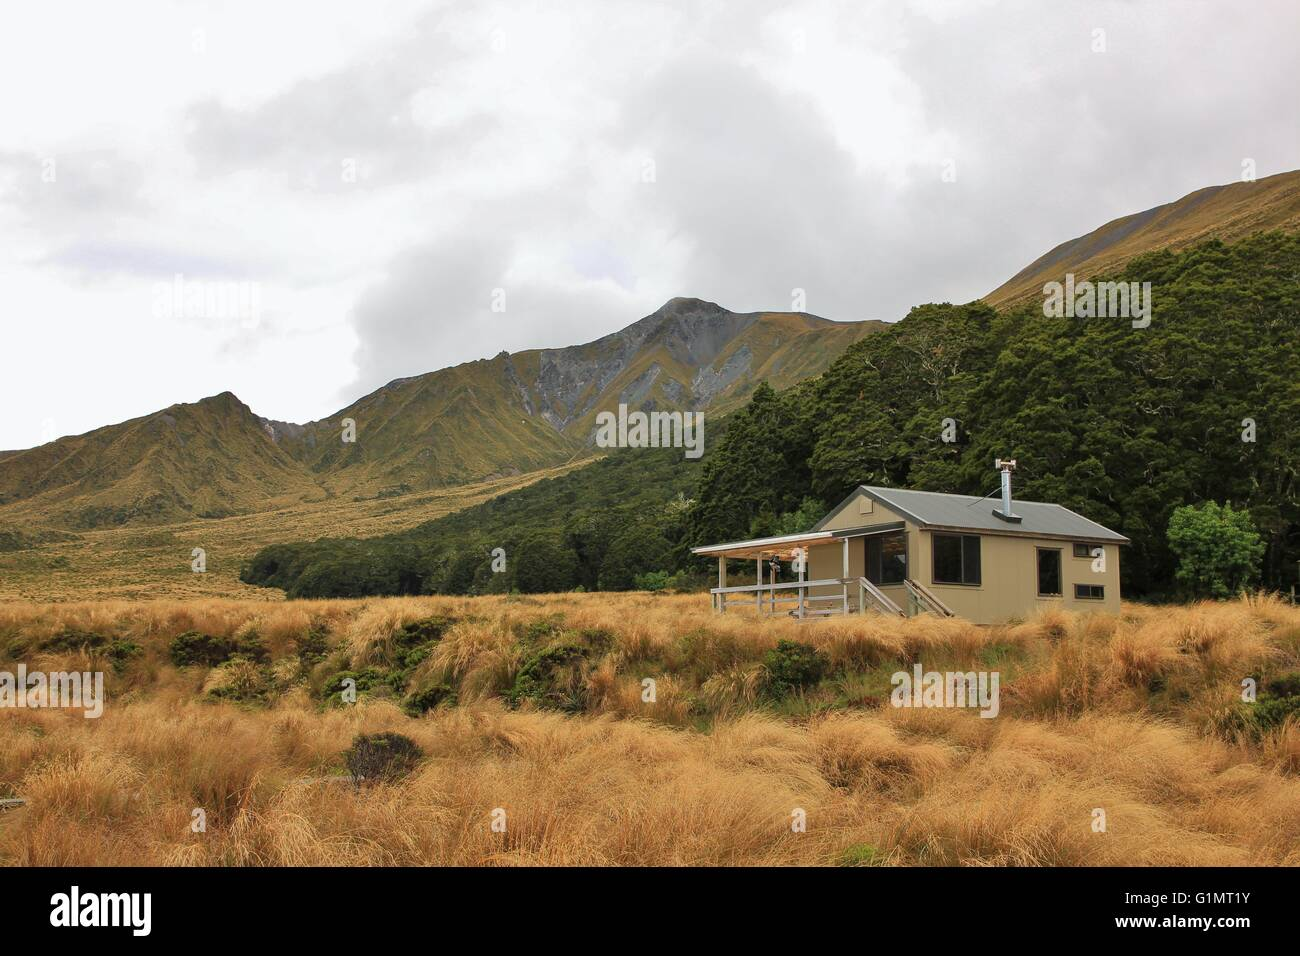 Public back country hut in the Fiordland National Park. Tramping destination in New Zealand. - Stock Image